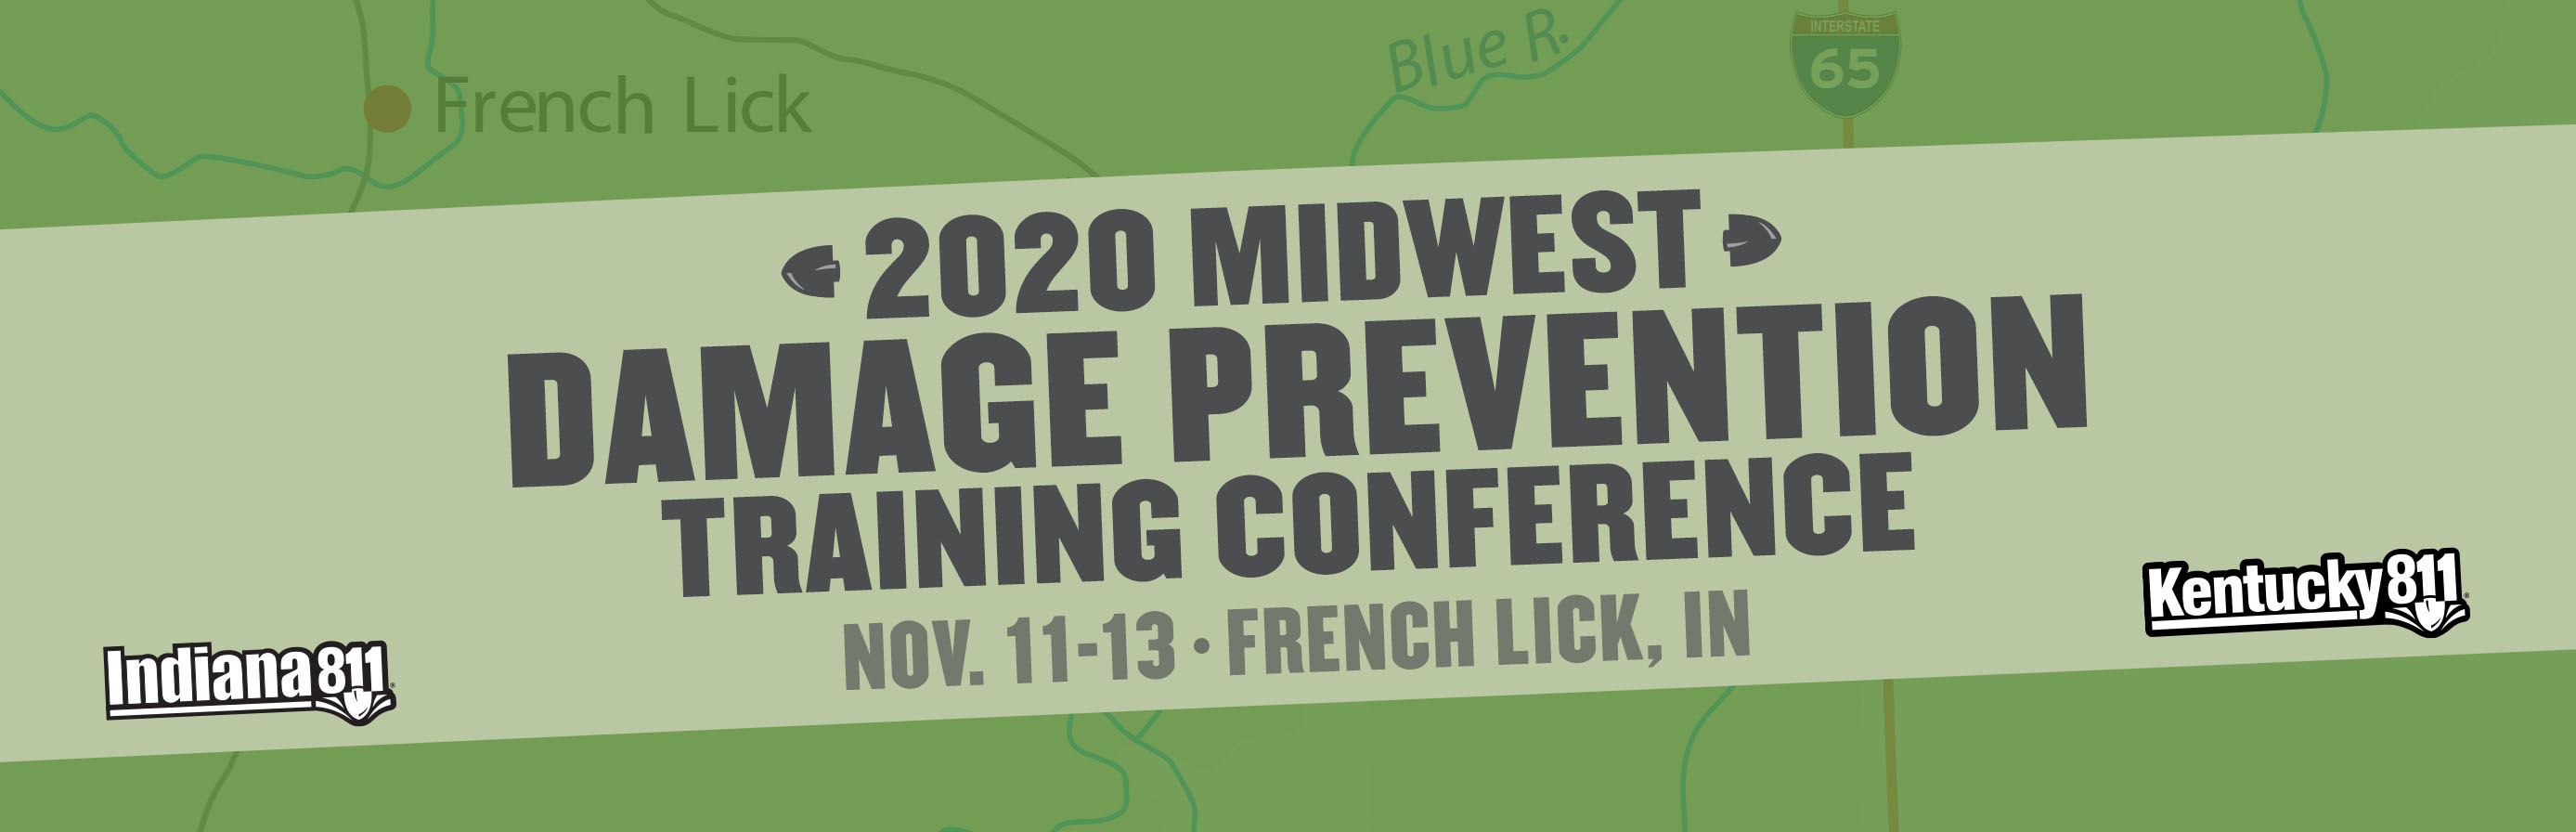 2019 Midwest Damage Prevention Training Conference